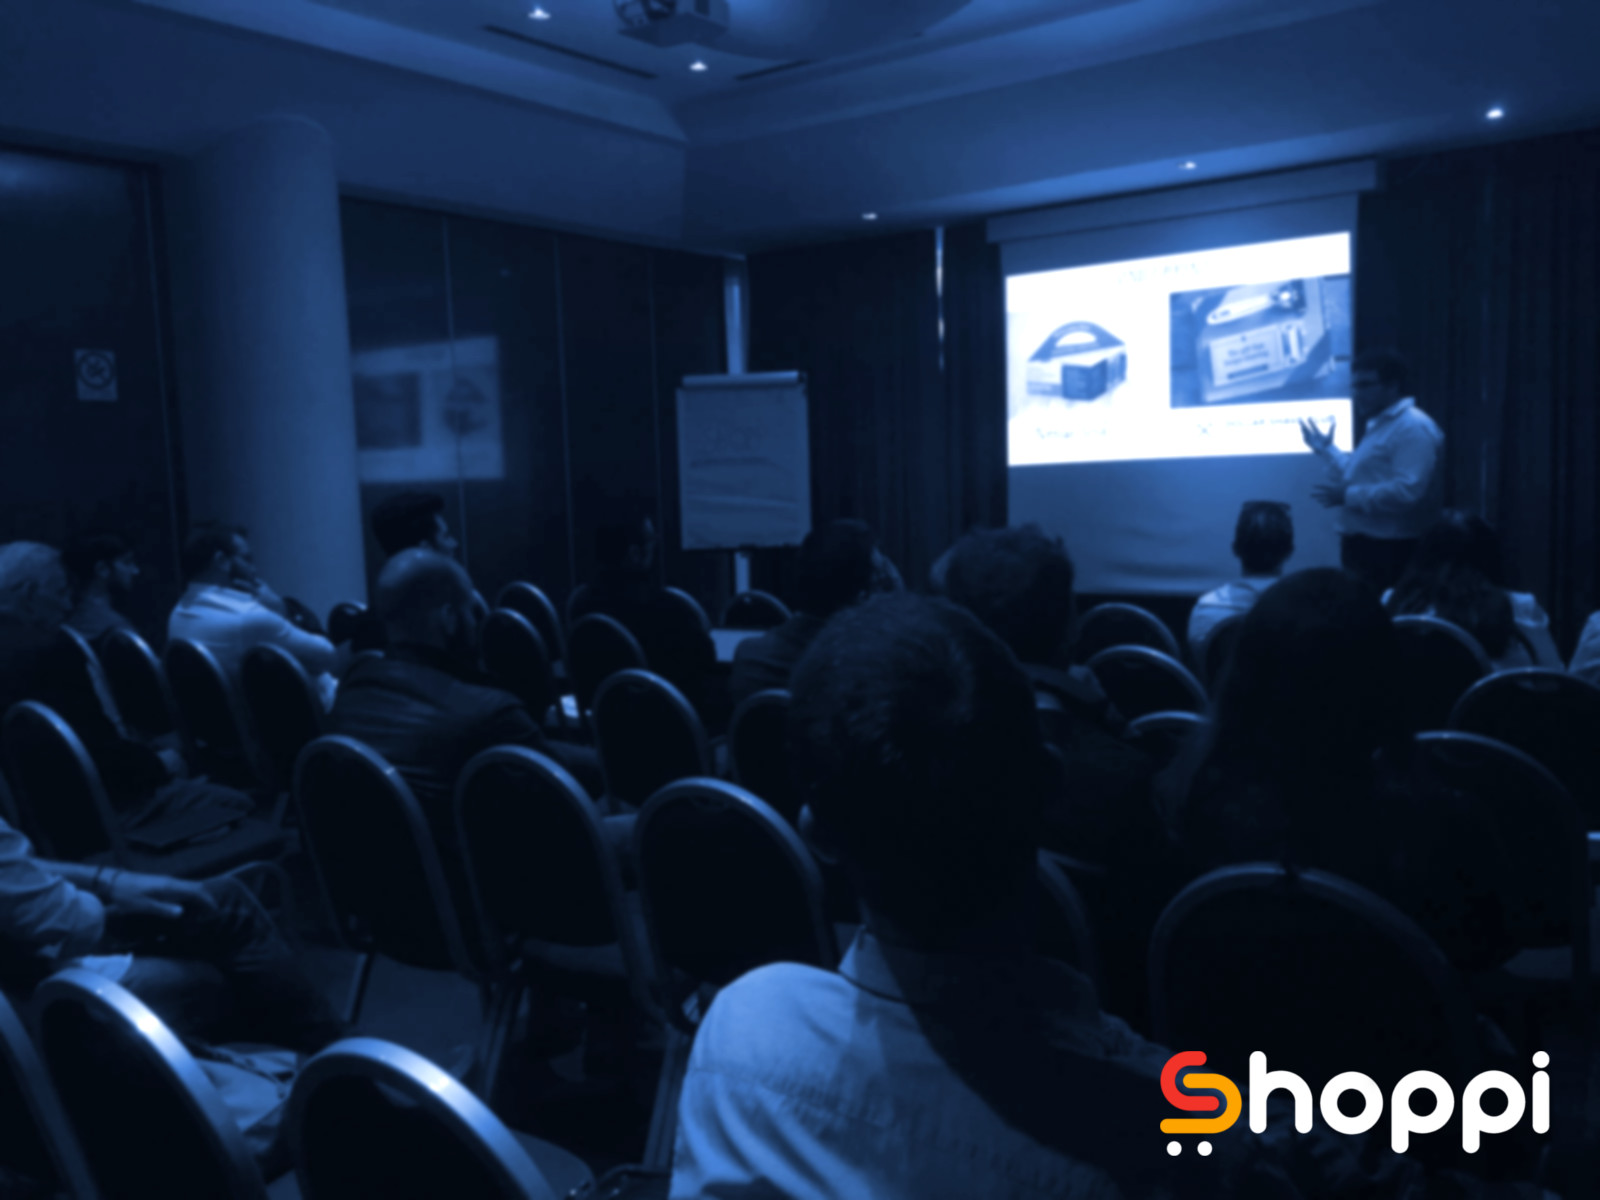 Shoppi - The Truth about eCommerce